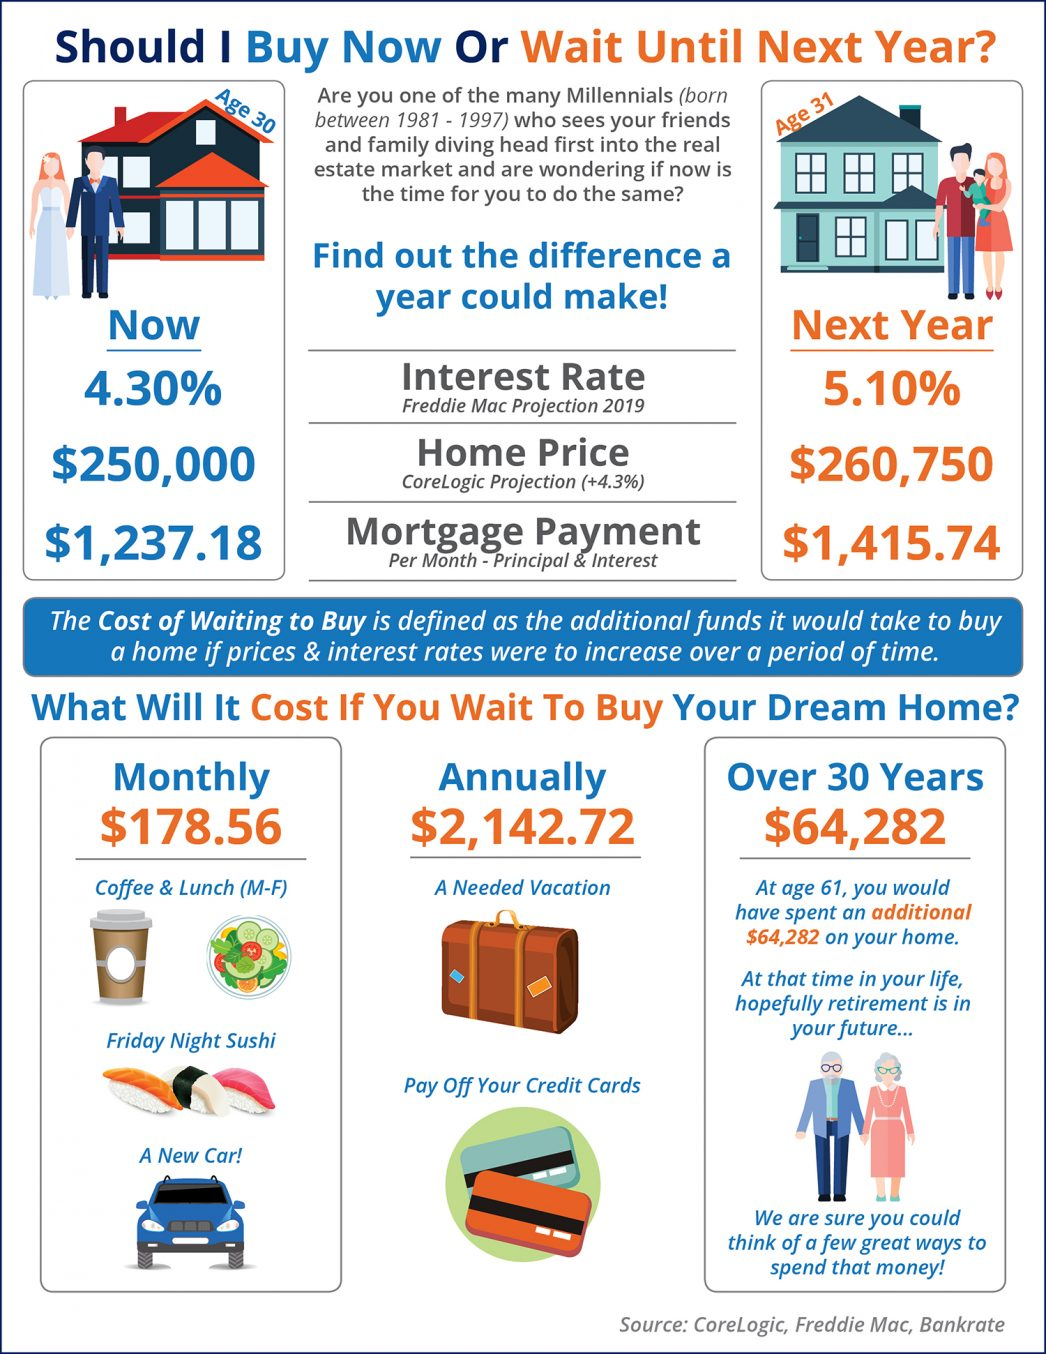 Should I Wait until next Year to Buy? Or Buy Now? [INFOGRAPHIC]   MyKCM